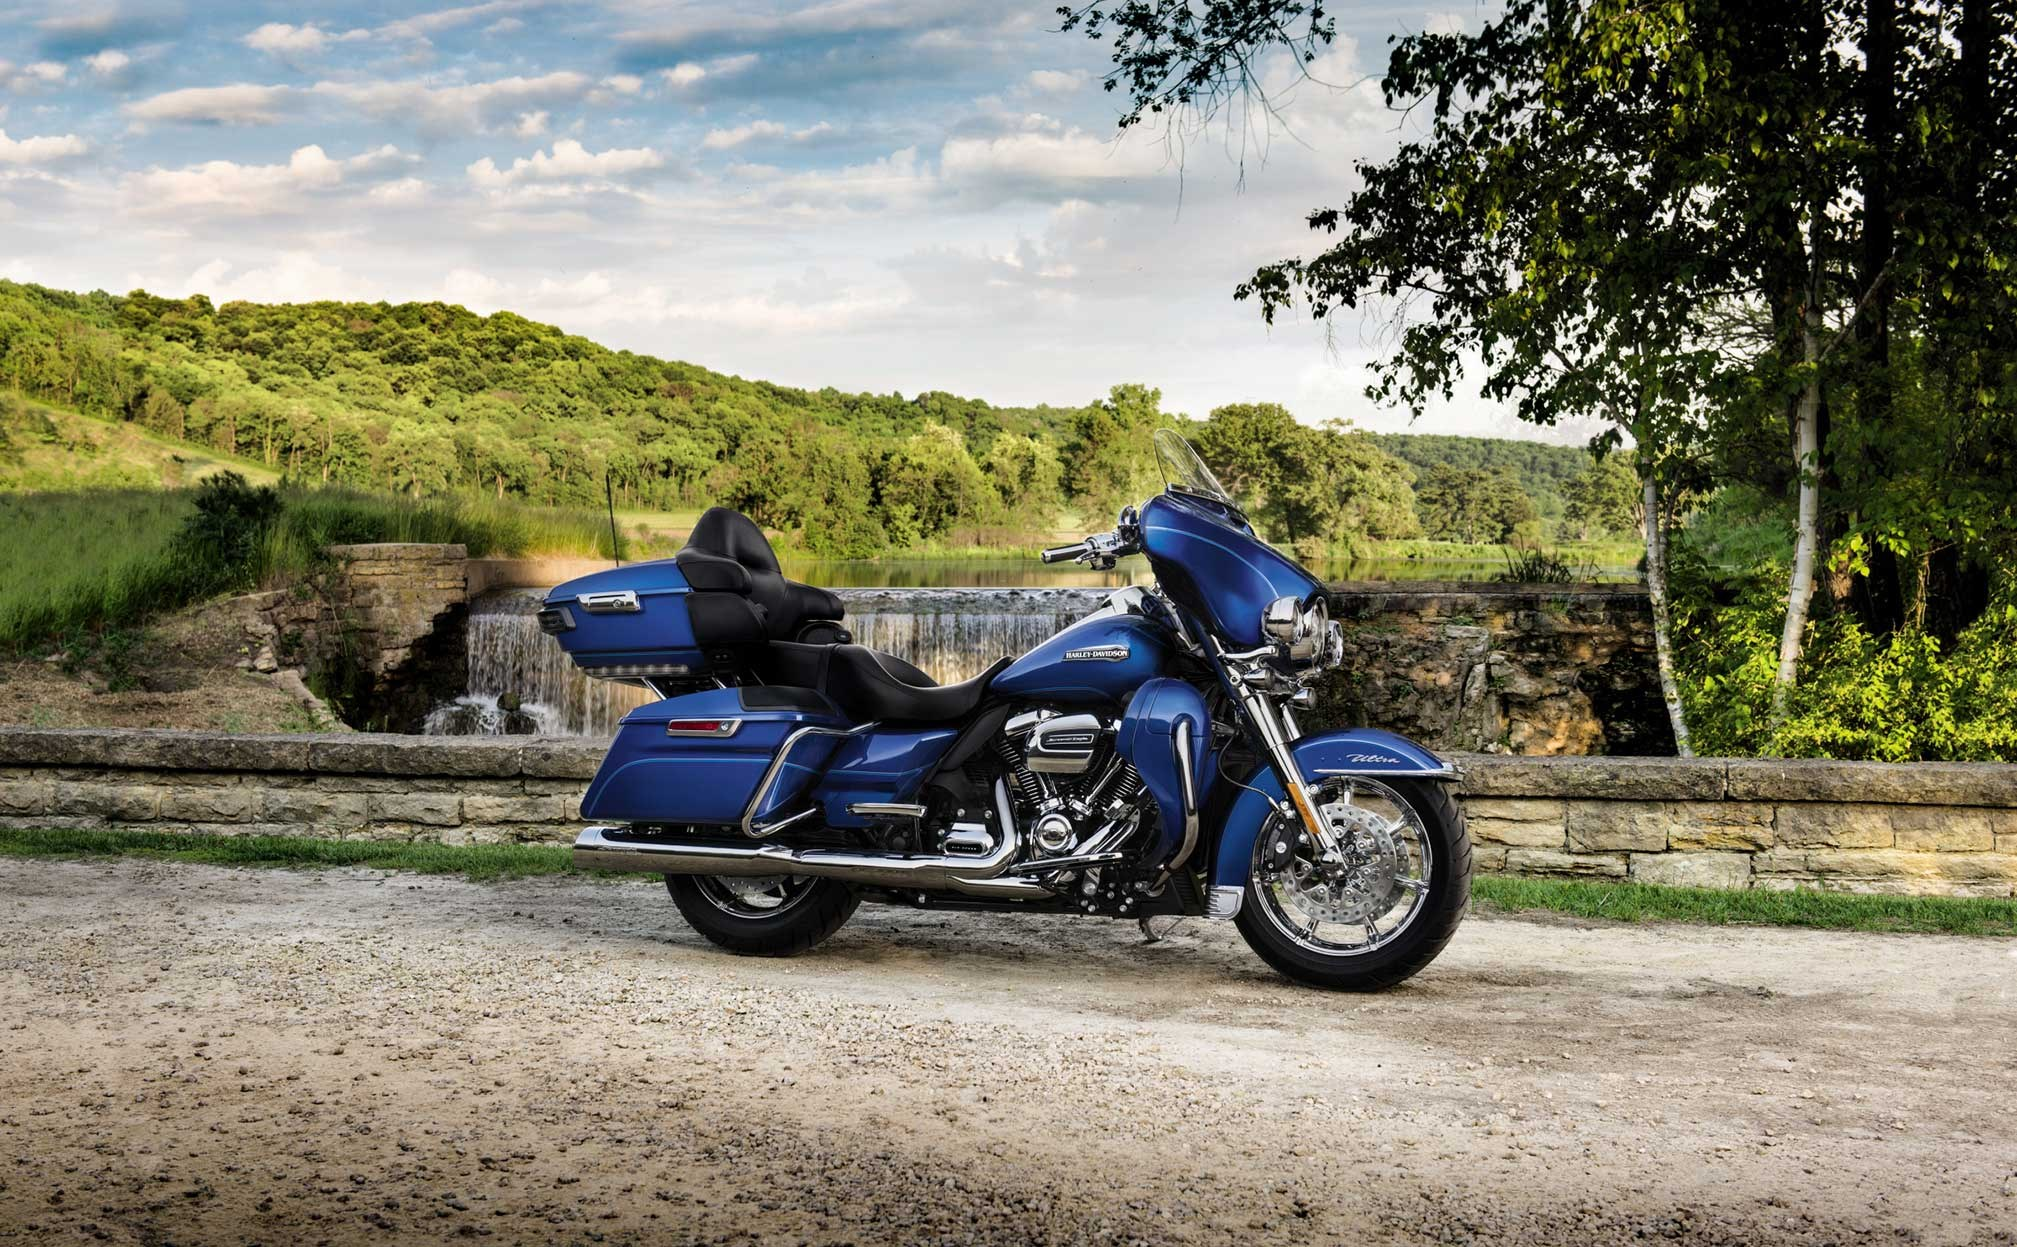 2017x1247 - Harley-Davidson Electra Glide Ultra Classic Wallpapers 13